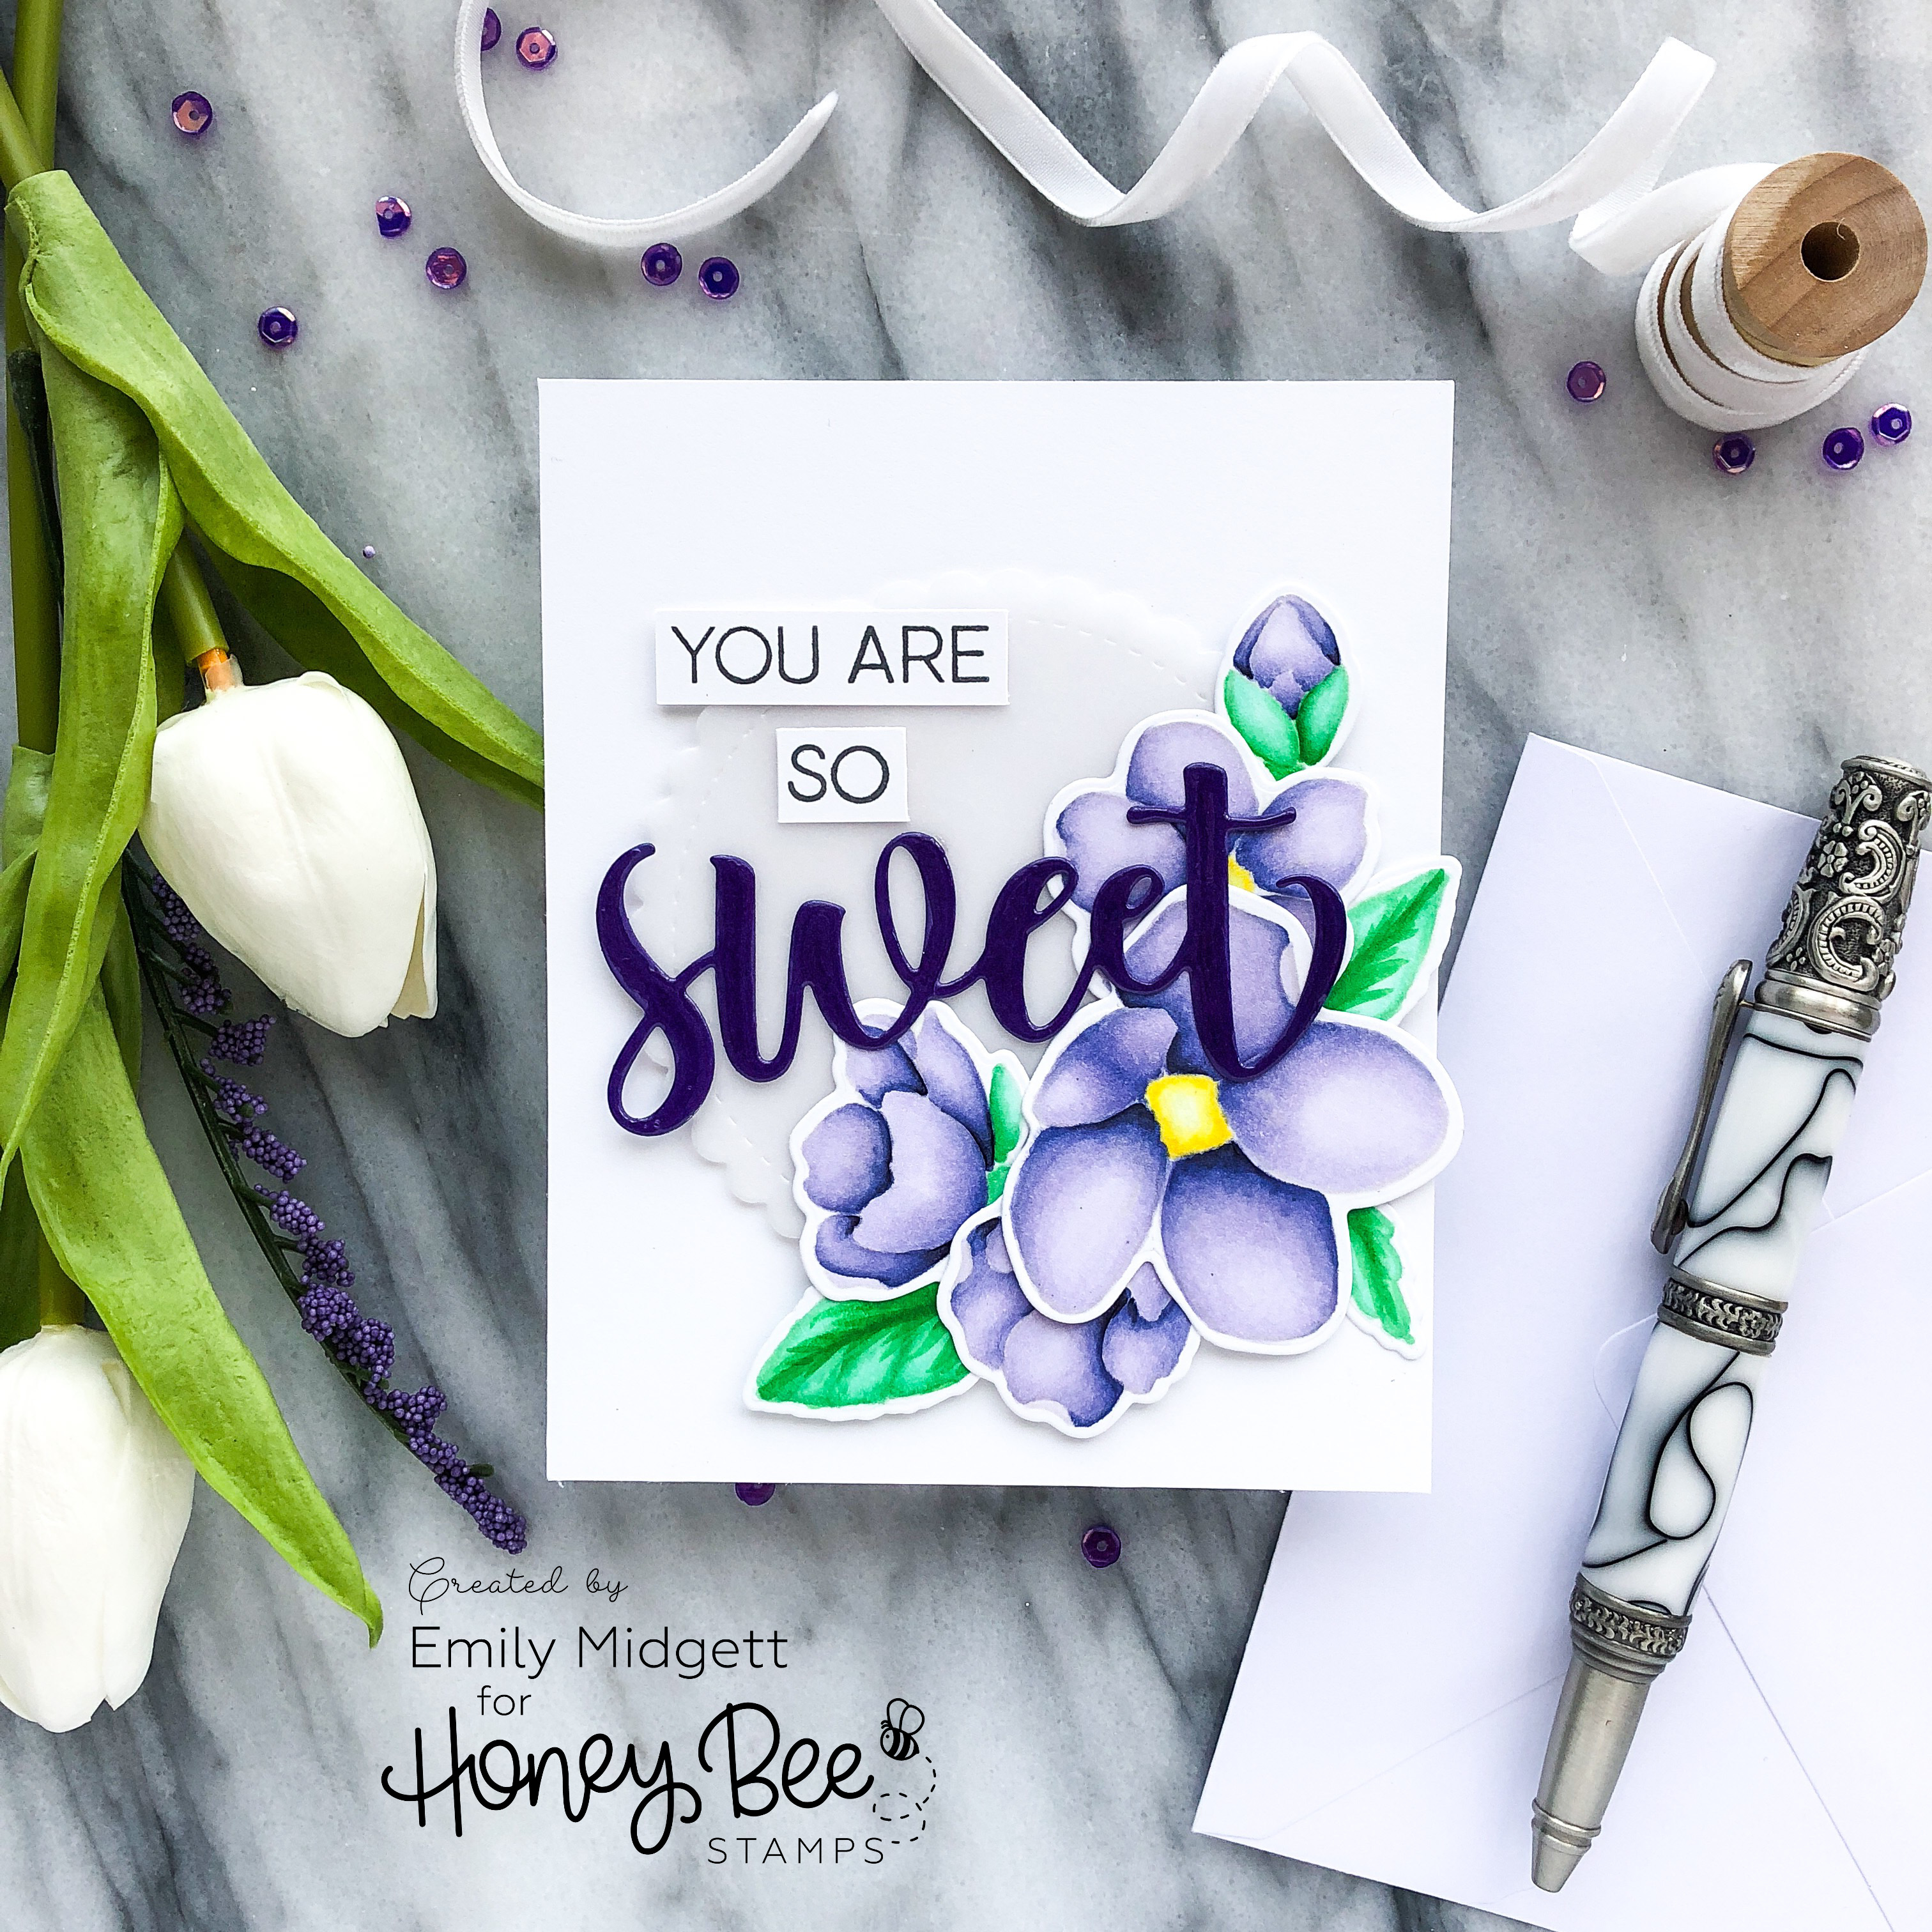 You are so sweet! – Honey Bee Stamps